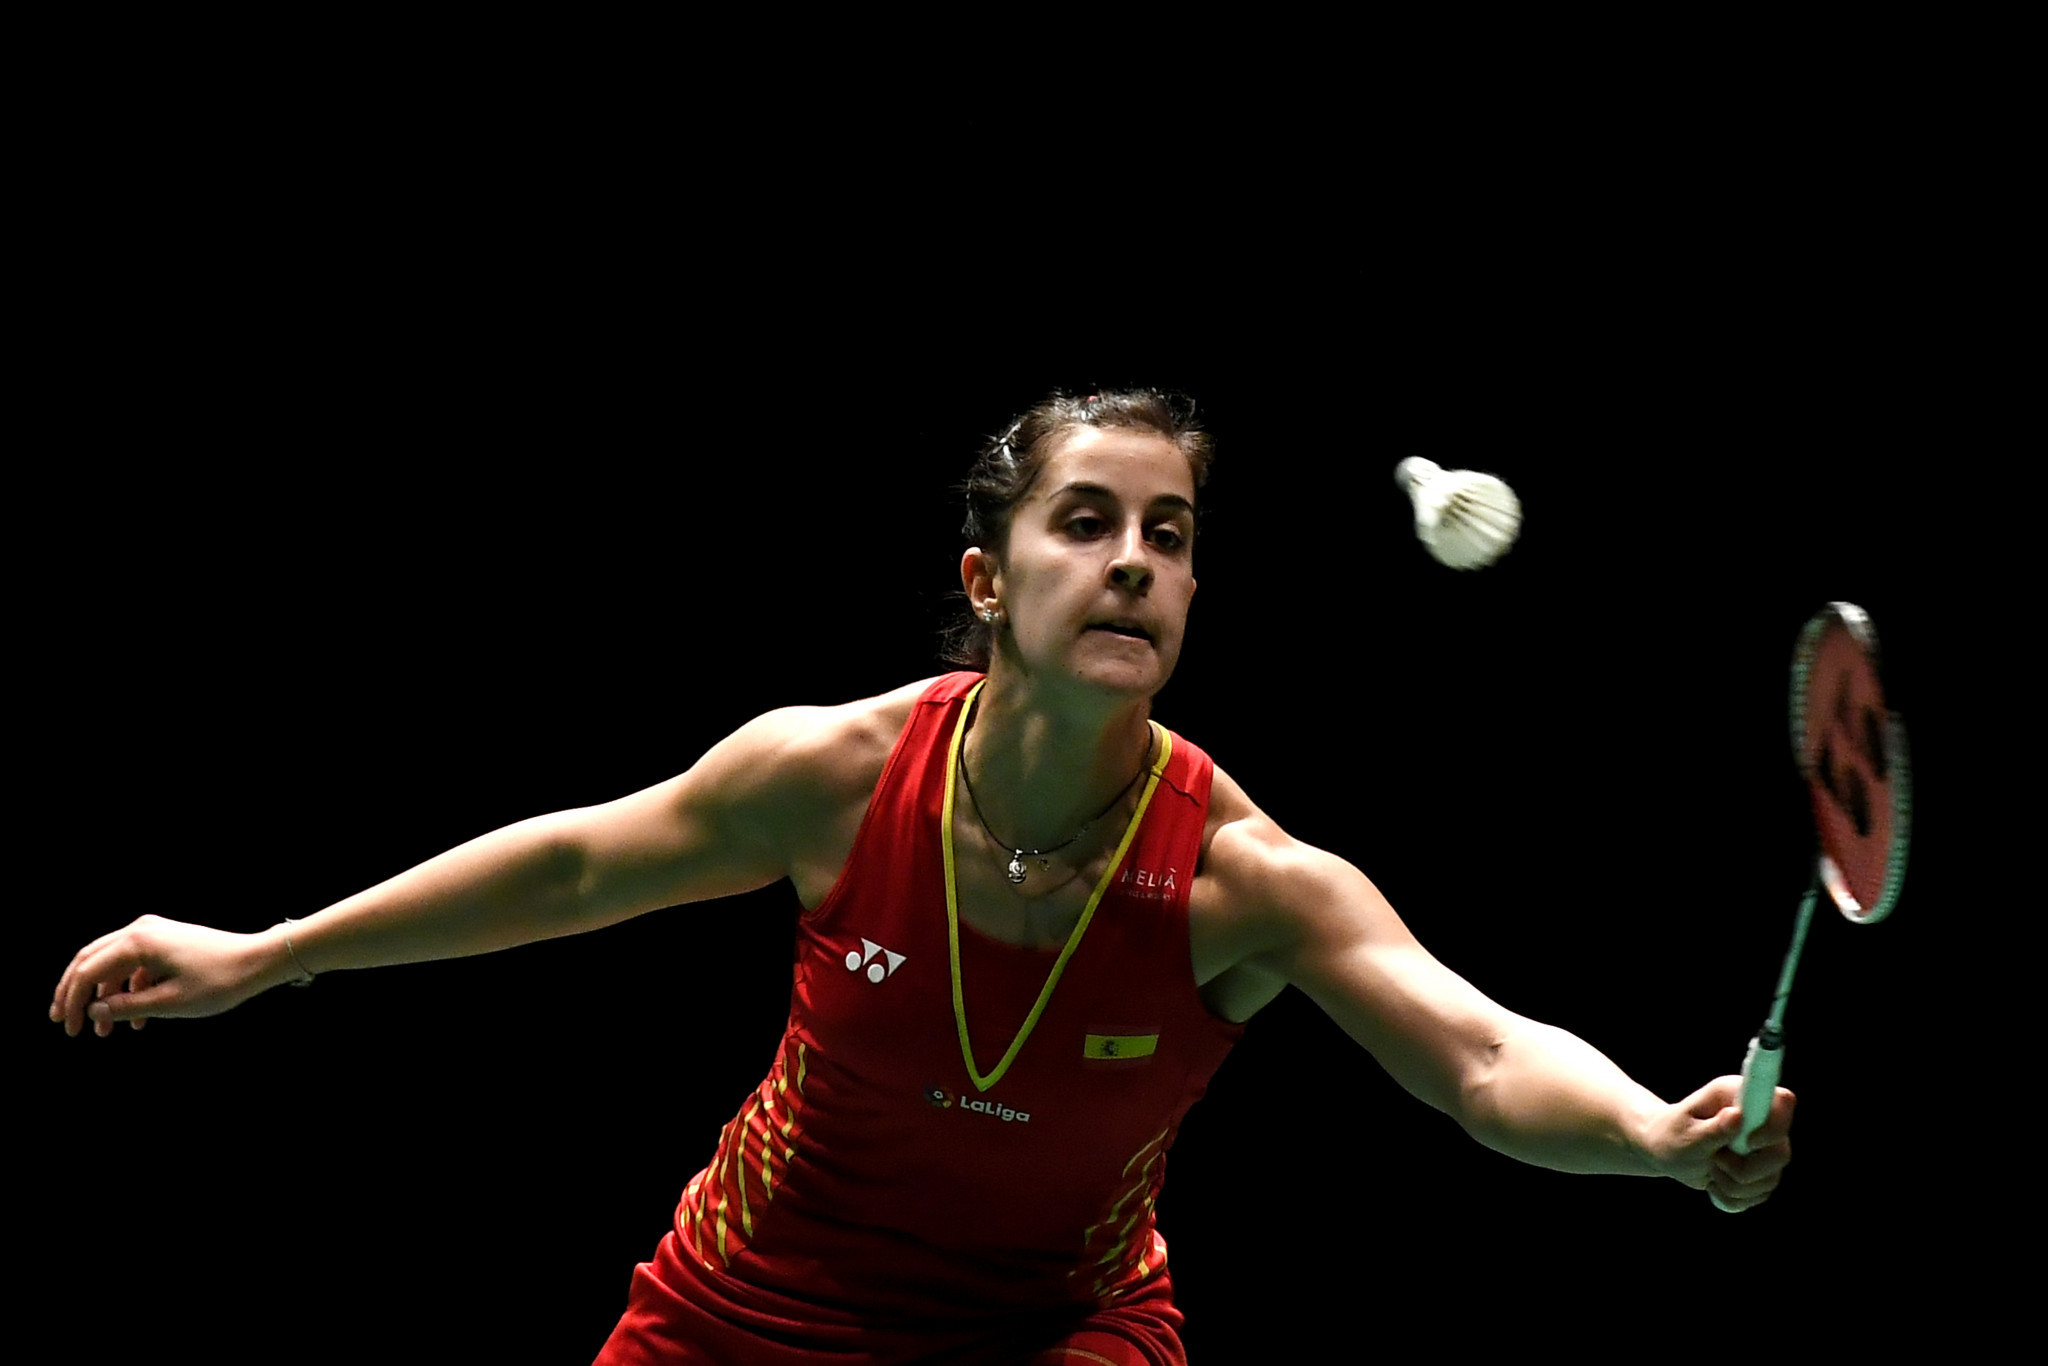 Spain's Olympic and world Carolina Marín ensured her passage through to the semi-finals of the women's singles event at the  Indonesia Masters in Jakarta with victory over India's P V Sindhu of India ©Getty Images